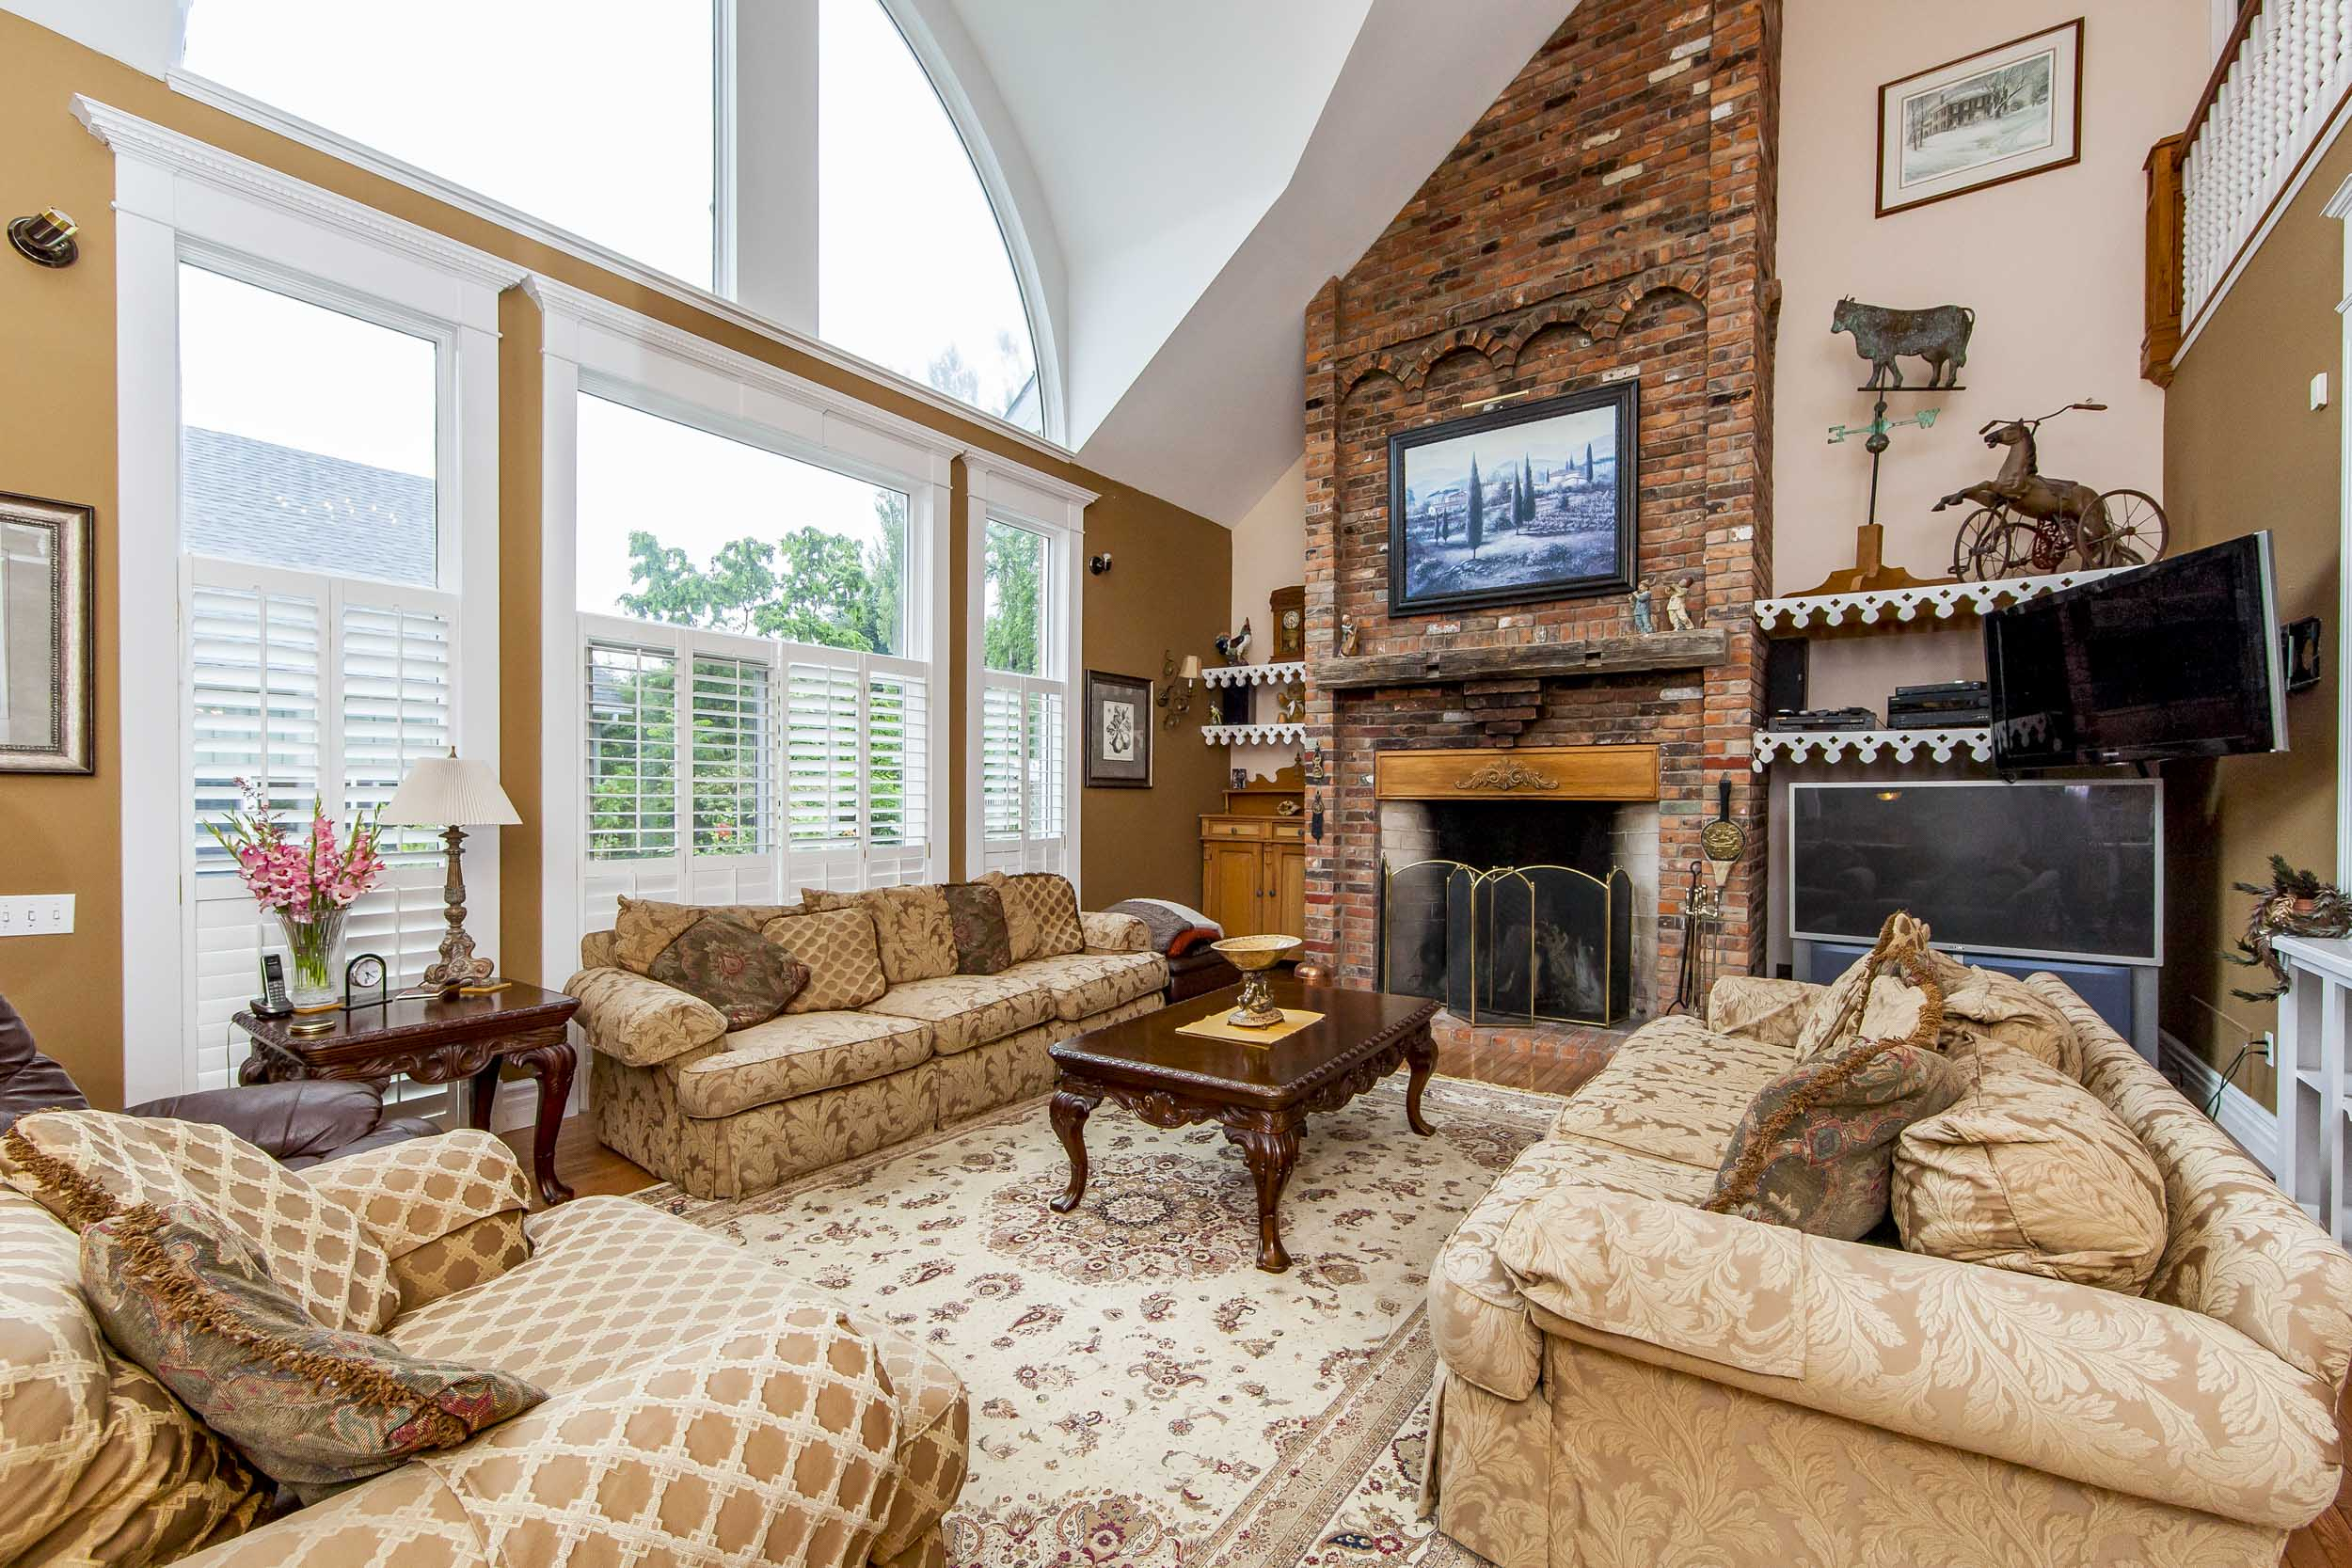 LUXURIOUS COUNTRY LIVING ROOM